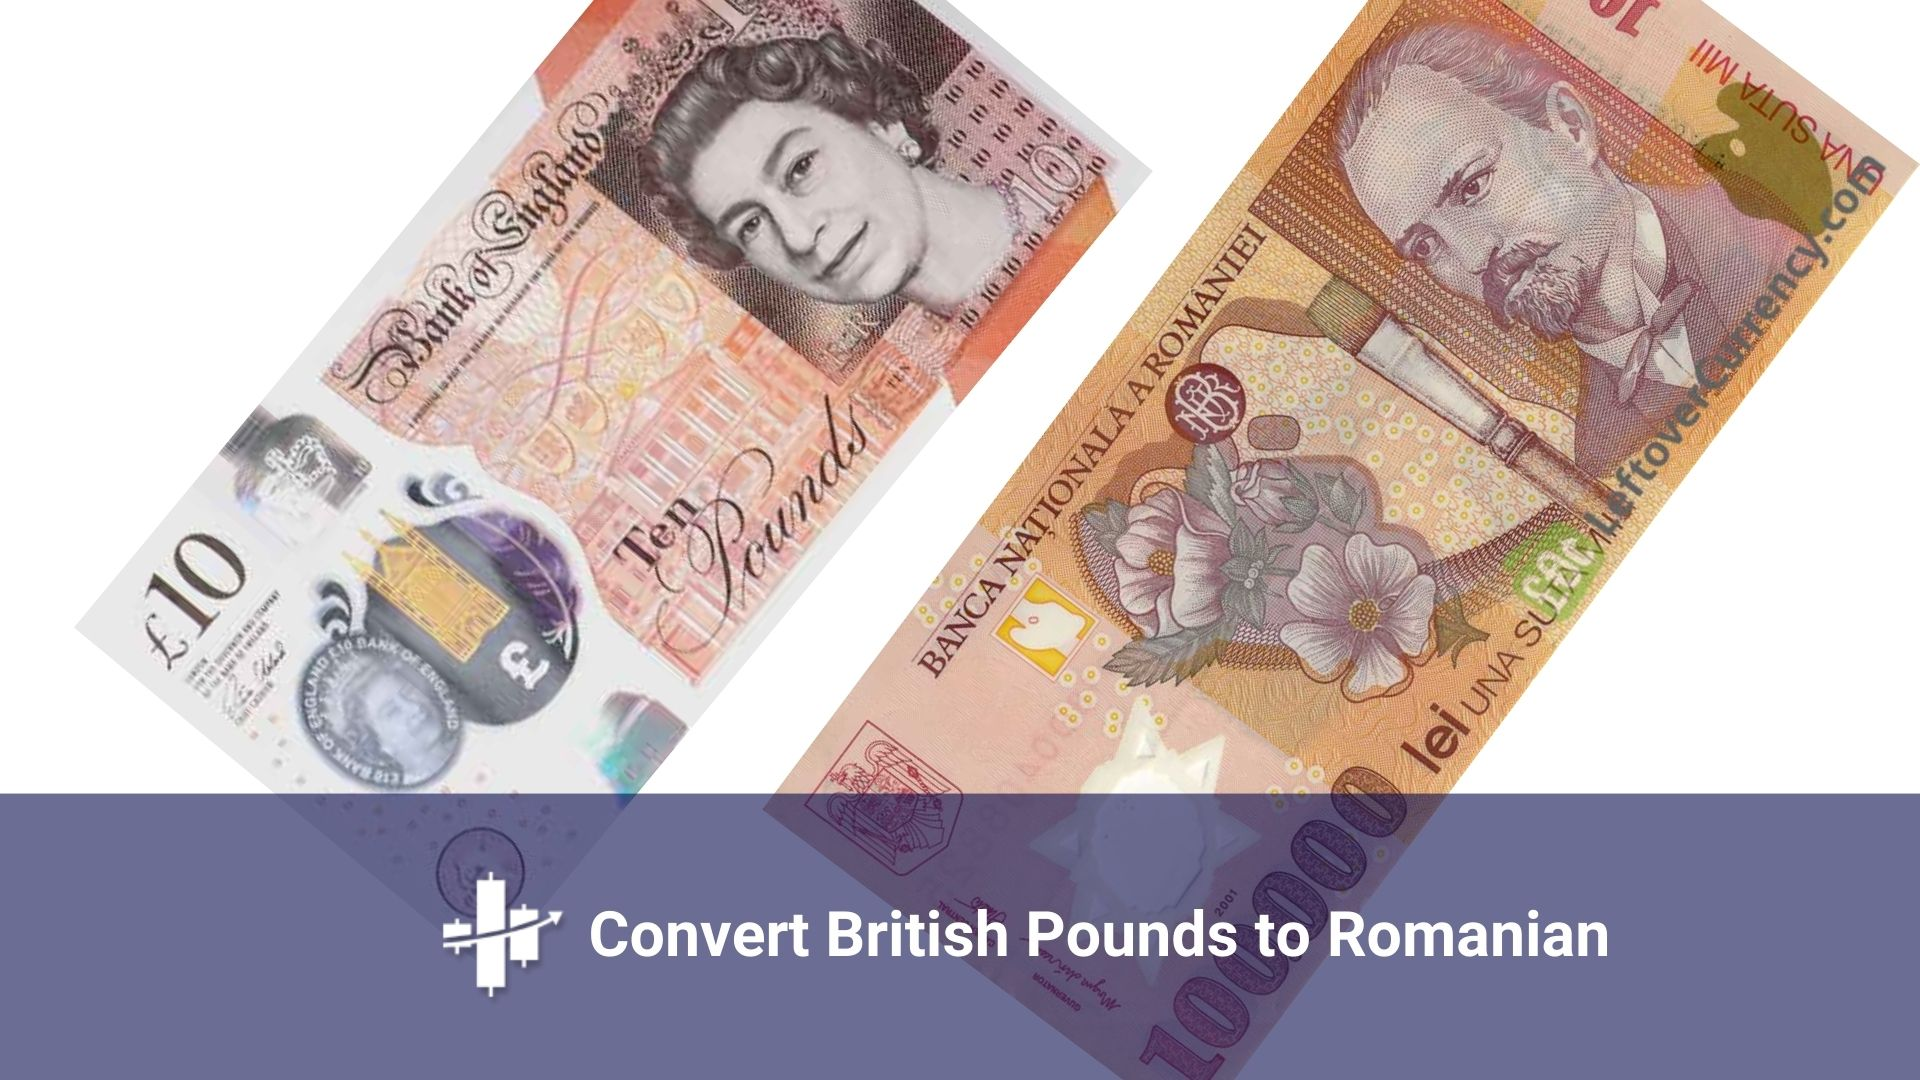 GBP to RON